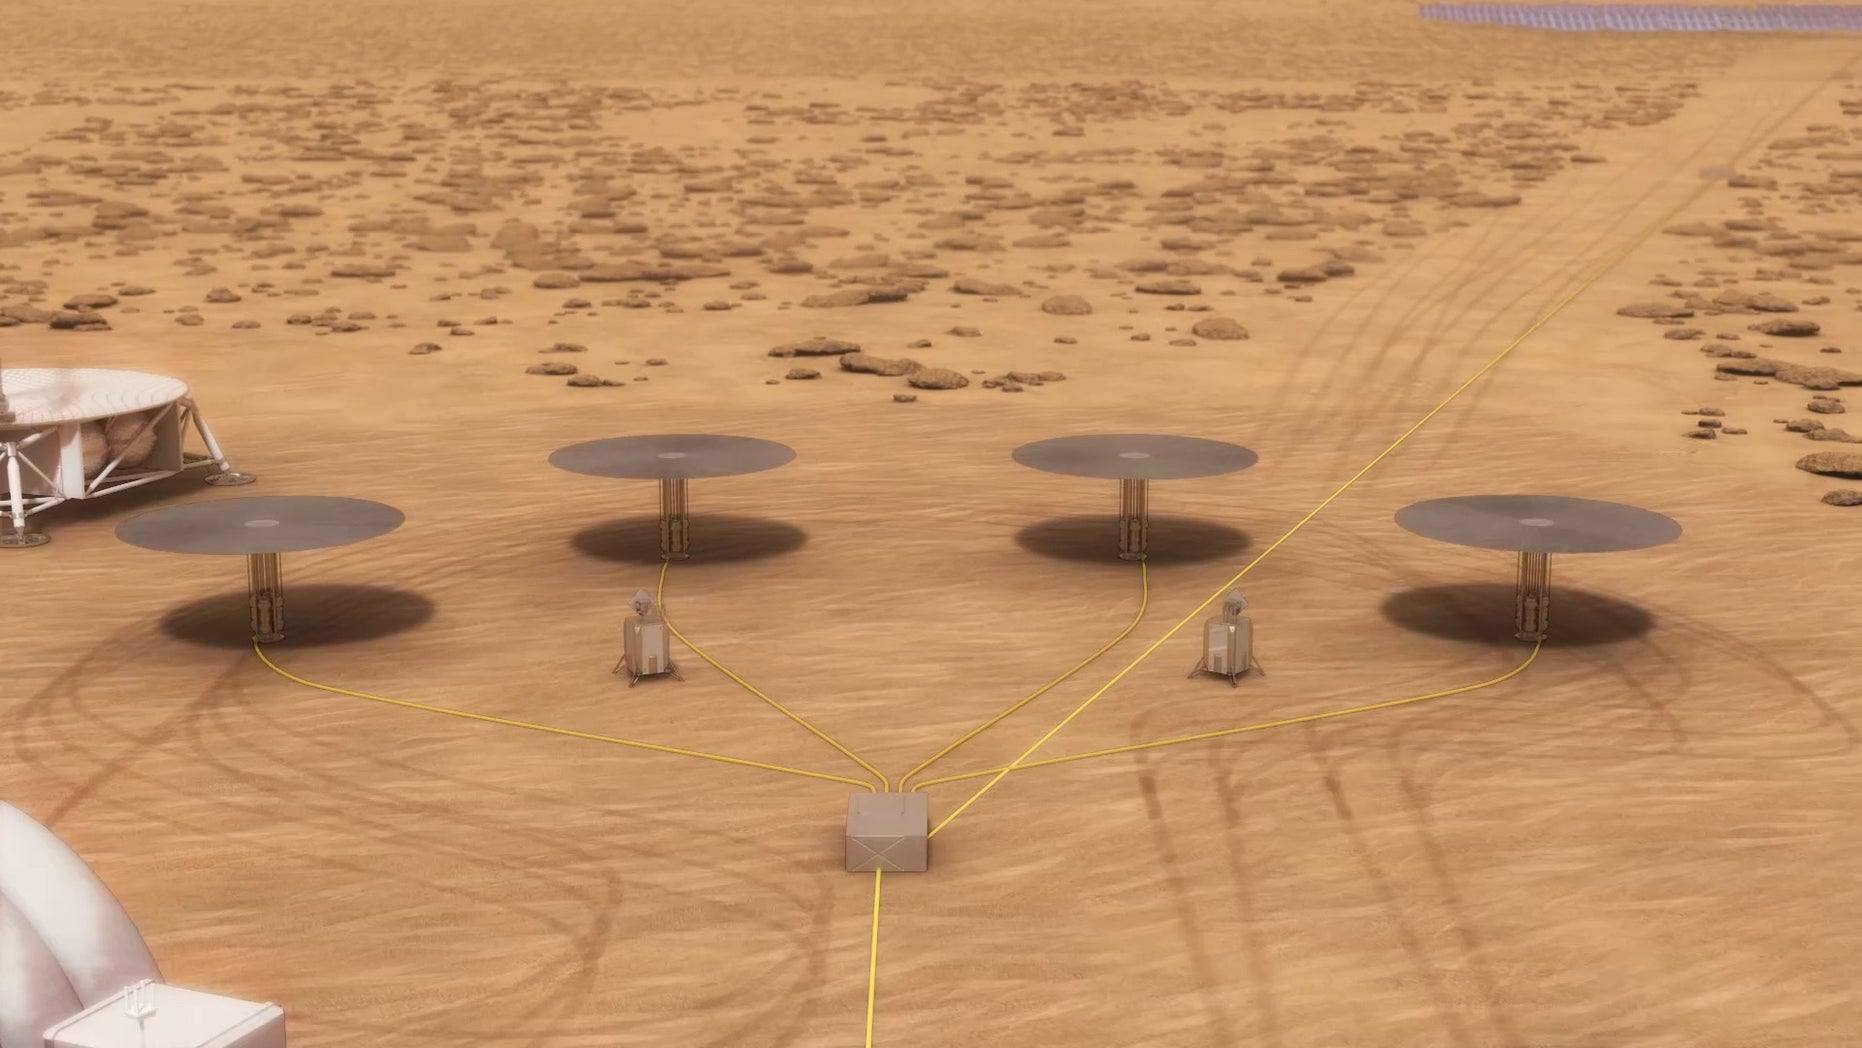 An artist's impression of a nuclear power system, consisting of four separate fission reactors, for Mars habitats.